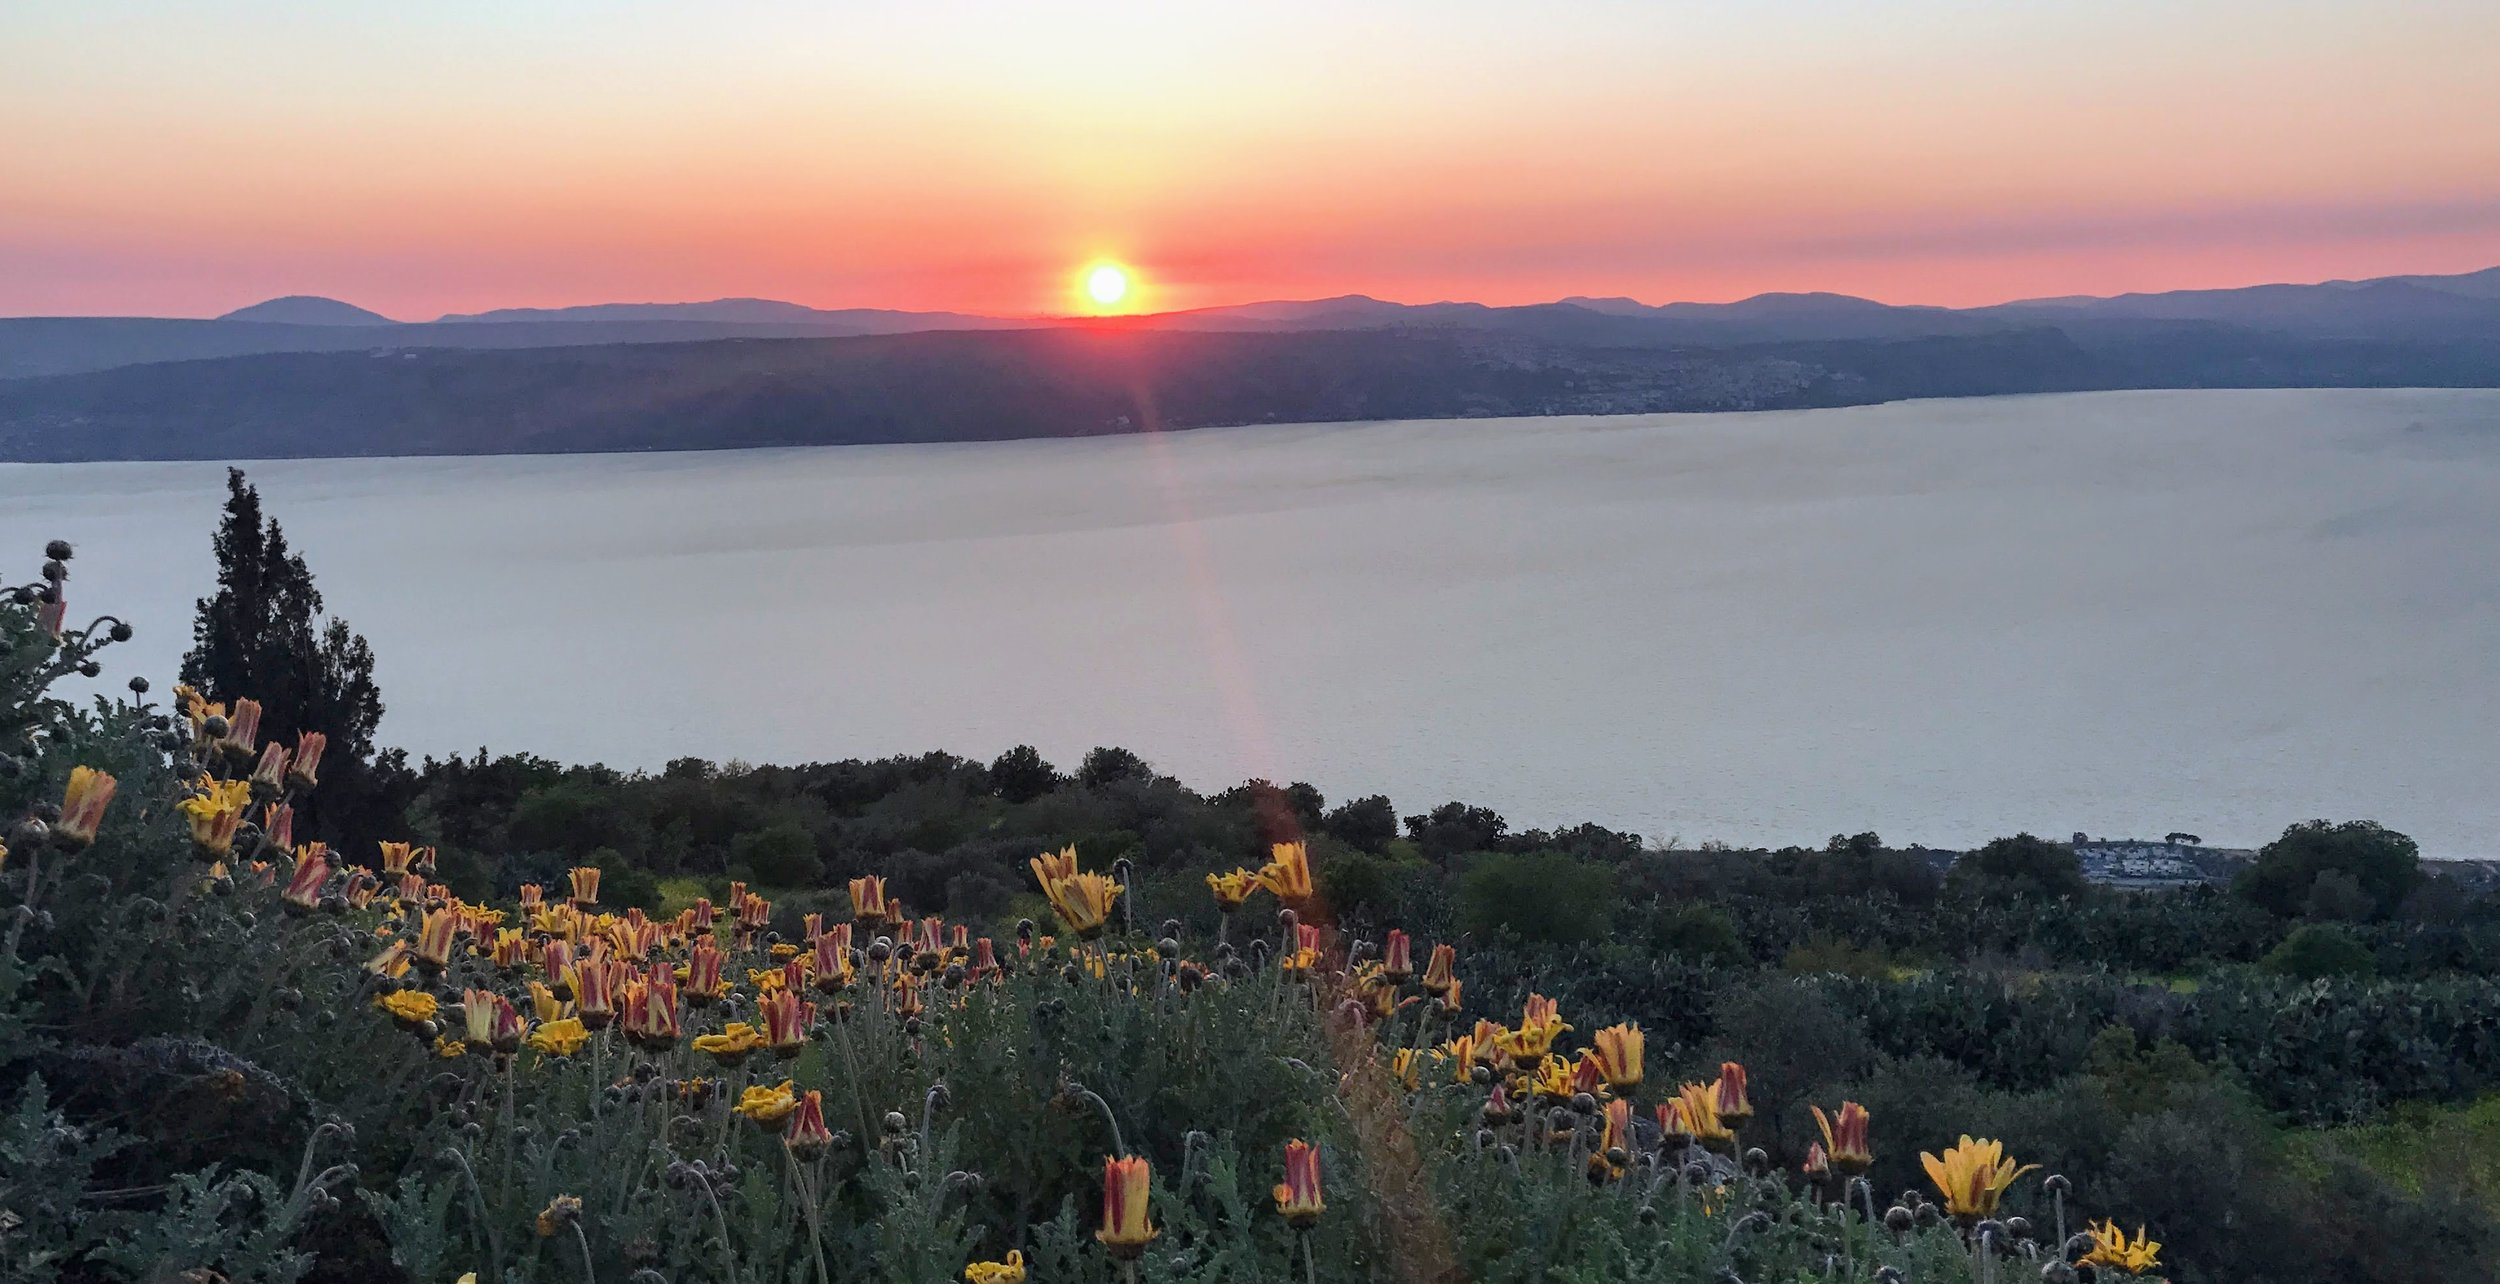 Sea of Galilee, taken at sunset from one of our most recommended accommodations.